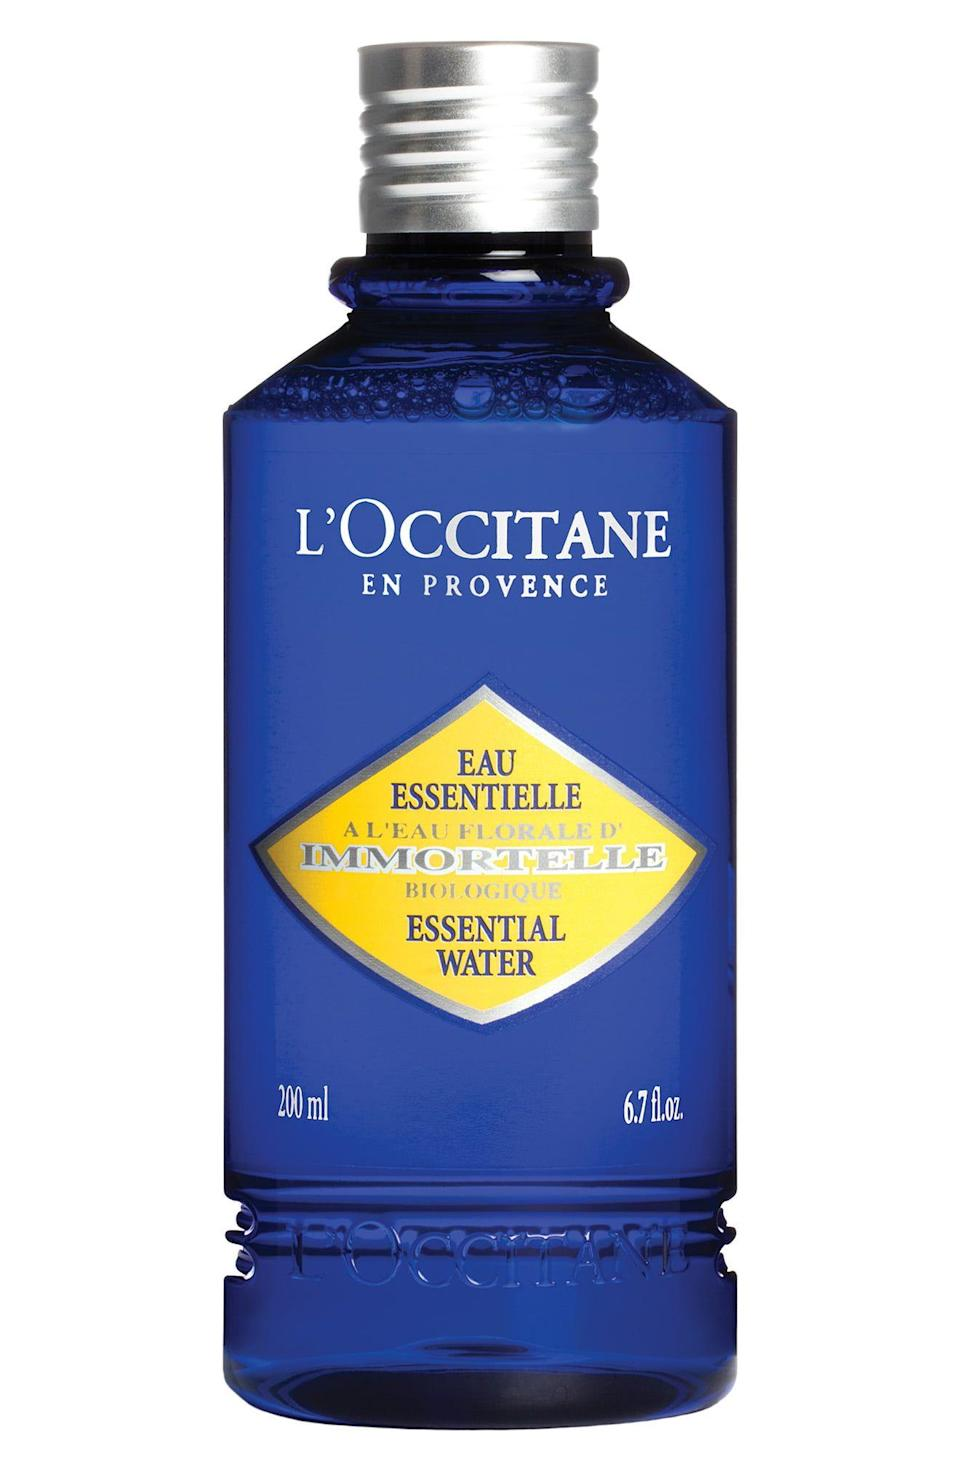 "<p><strong>L'Occitane</strong></p><p>loccitane.com</p><p><strong>$34.00</strong></p><p><a href=""https://go.redirectingat.com?id=74968X1596630&url=https%3A%2F%2Fwww.loccitane.com%2Fen-us%2Fimmortelle-essential-water-27EV200I19.html&sref=https%3A%2F%2Fwww.goodhousekeeping.com%2Fbeauty%2Fanti-aging%2Fg32894759%2Fbest-toners%2F"" rel=""nofollow noopener"" target=""_blank"" data-ylk=""slk:Shop Now"" class=""link rapid-noclick-resp"">Shop Now</a></p><p>L'Occitane's toner water is based on a bouquet of soothing botanicals like immortelle (helichrysum) extract, rose water, and sunflower seed oil. ""<strong>My face feels instantly cooled and calm</strong>,"" GH's beauty editor reports. ""Plus, it smells herbal and warm, like immortelle flowers dried in the Corsican sun, where the ingredient is harvested.""</p>"